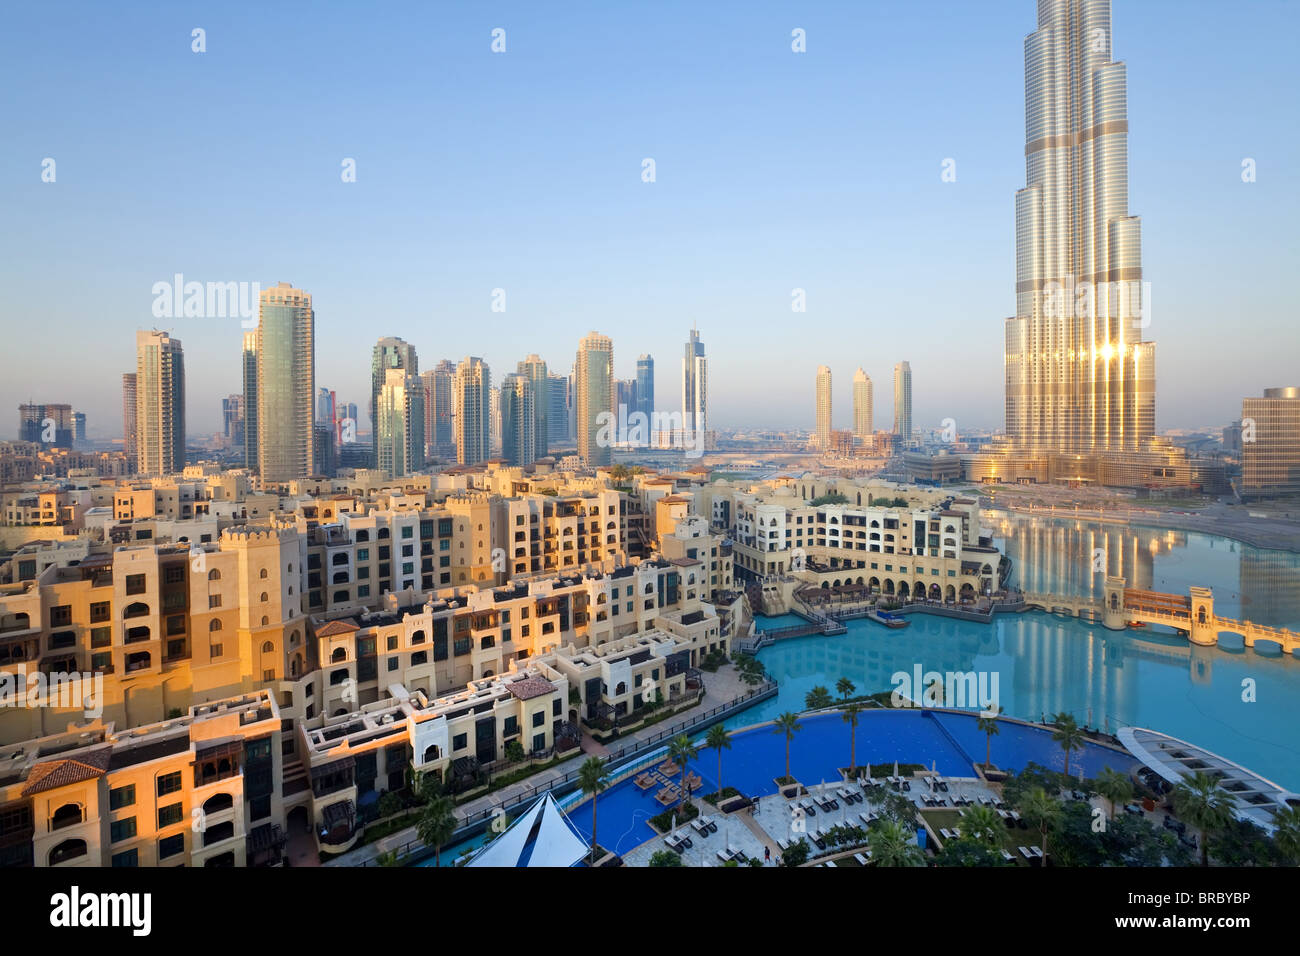 The Burj Khalifa, completed in 2010, tallest man made structure in the world, Dubai, UAE - Stock Image